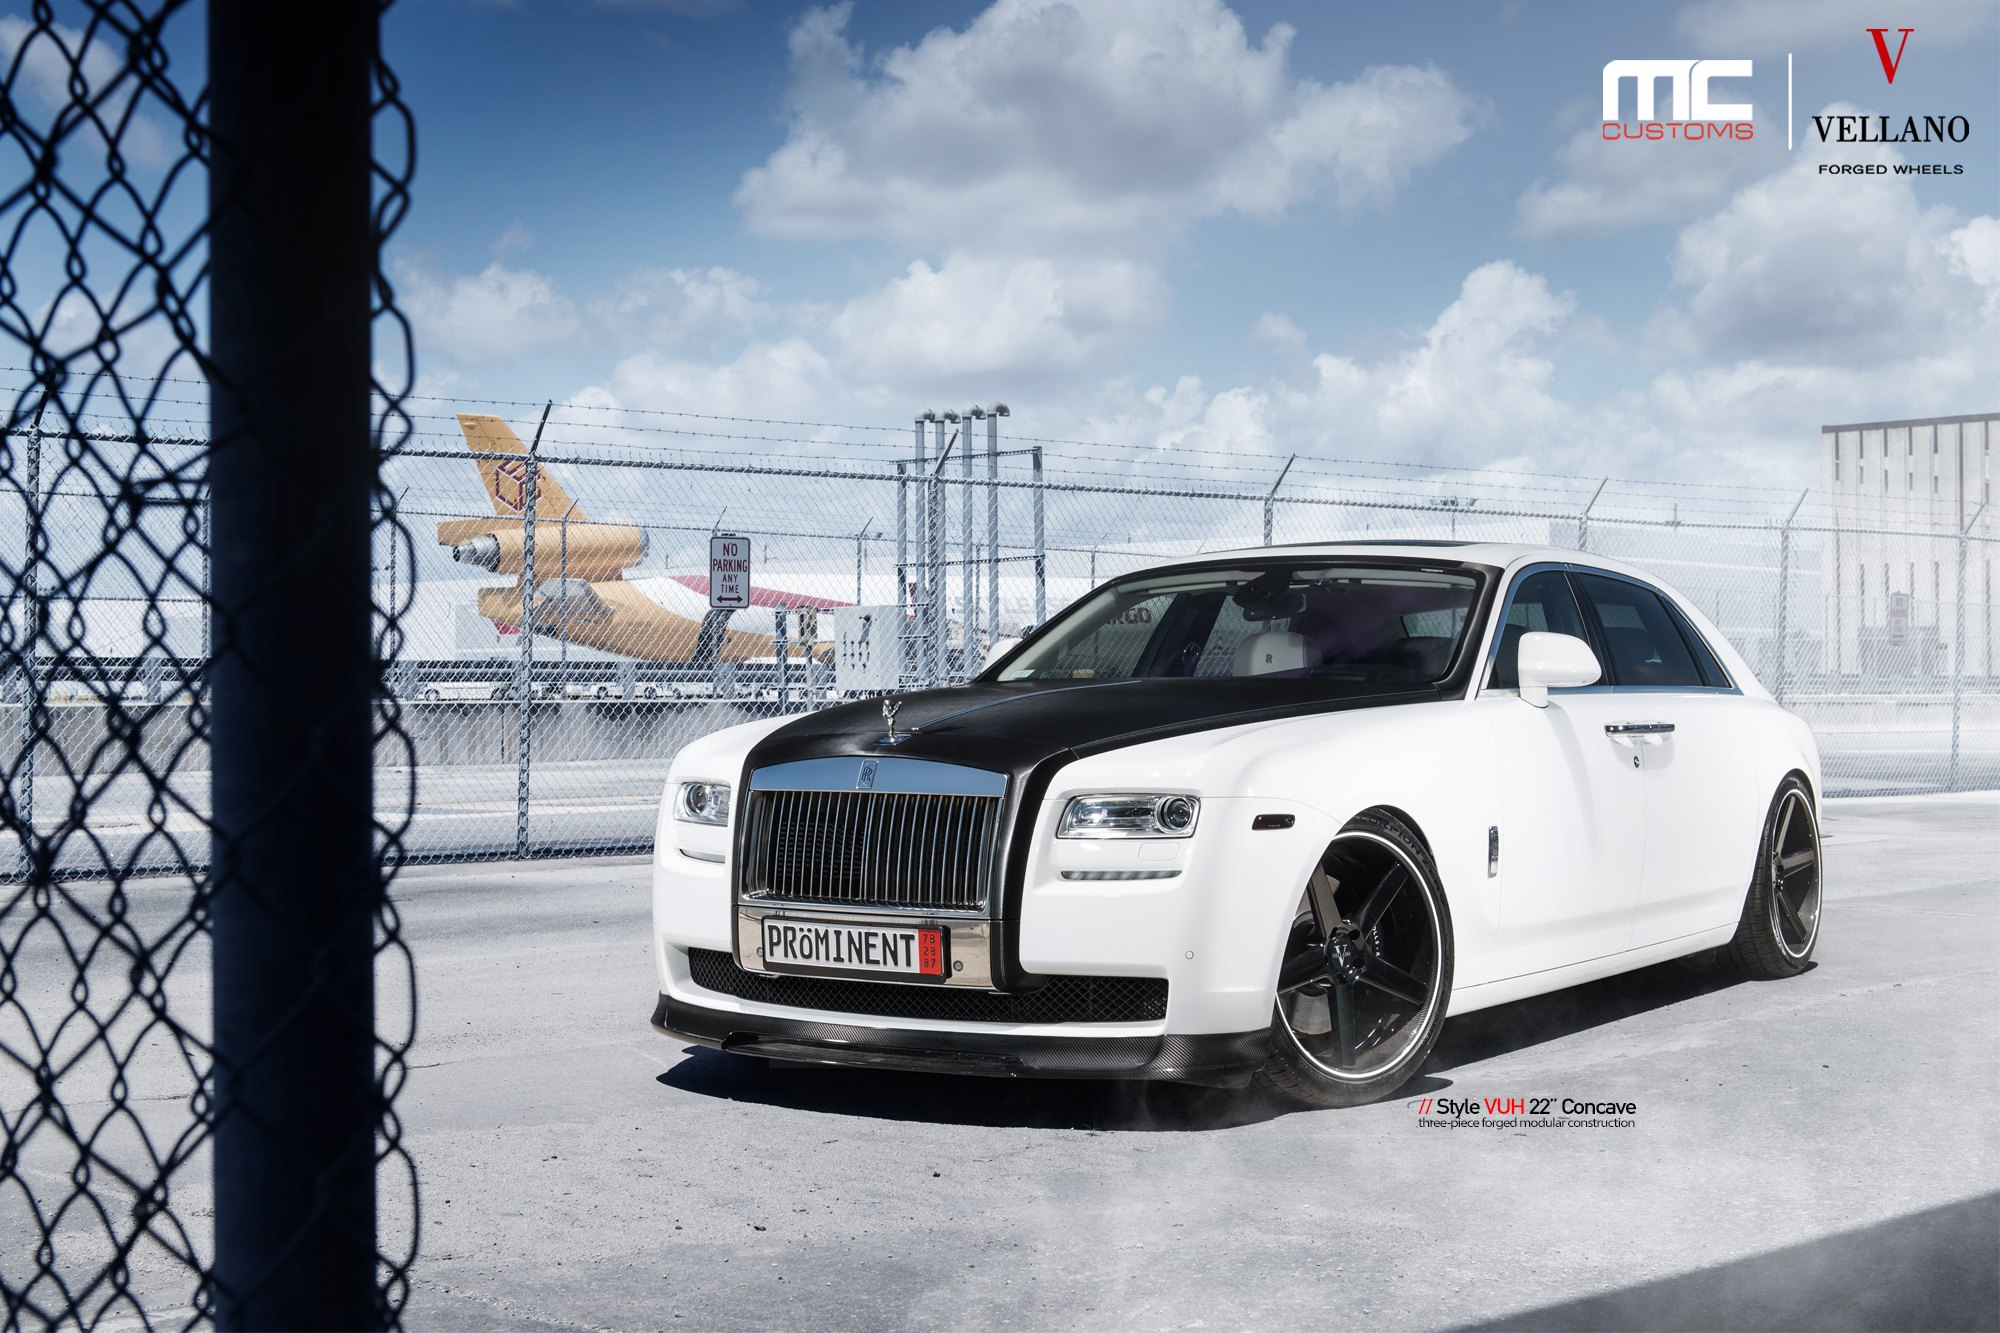 Iconic Rolls Royce Ghost This Time Boastig Carbon Fiber Elements And More Carid Com Gallery